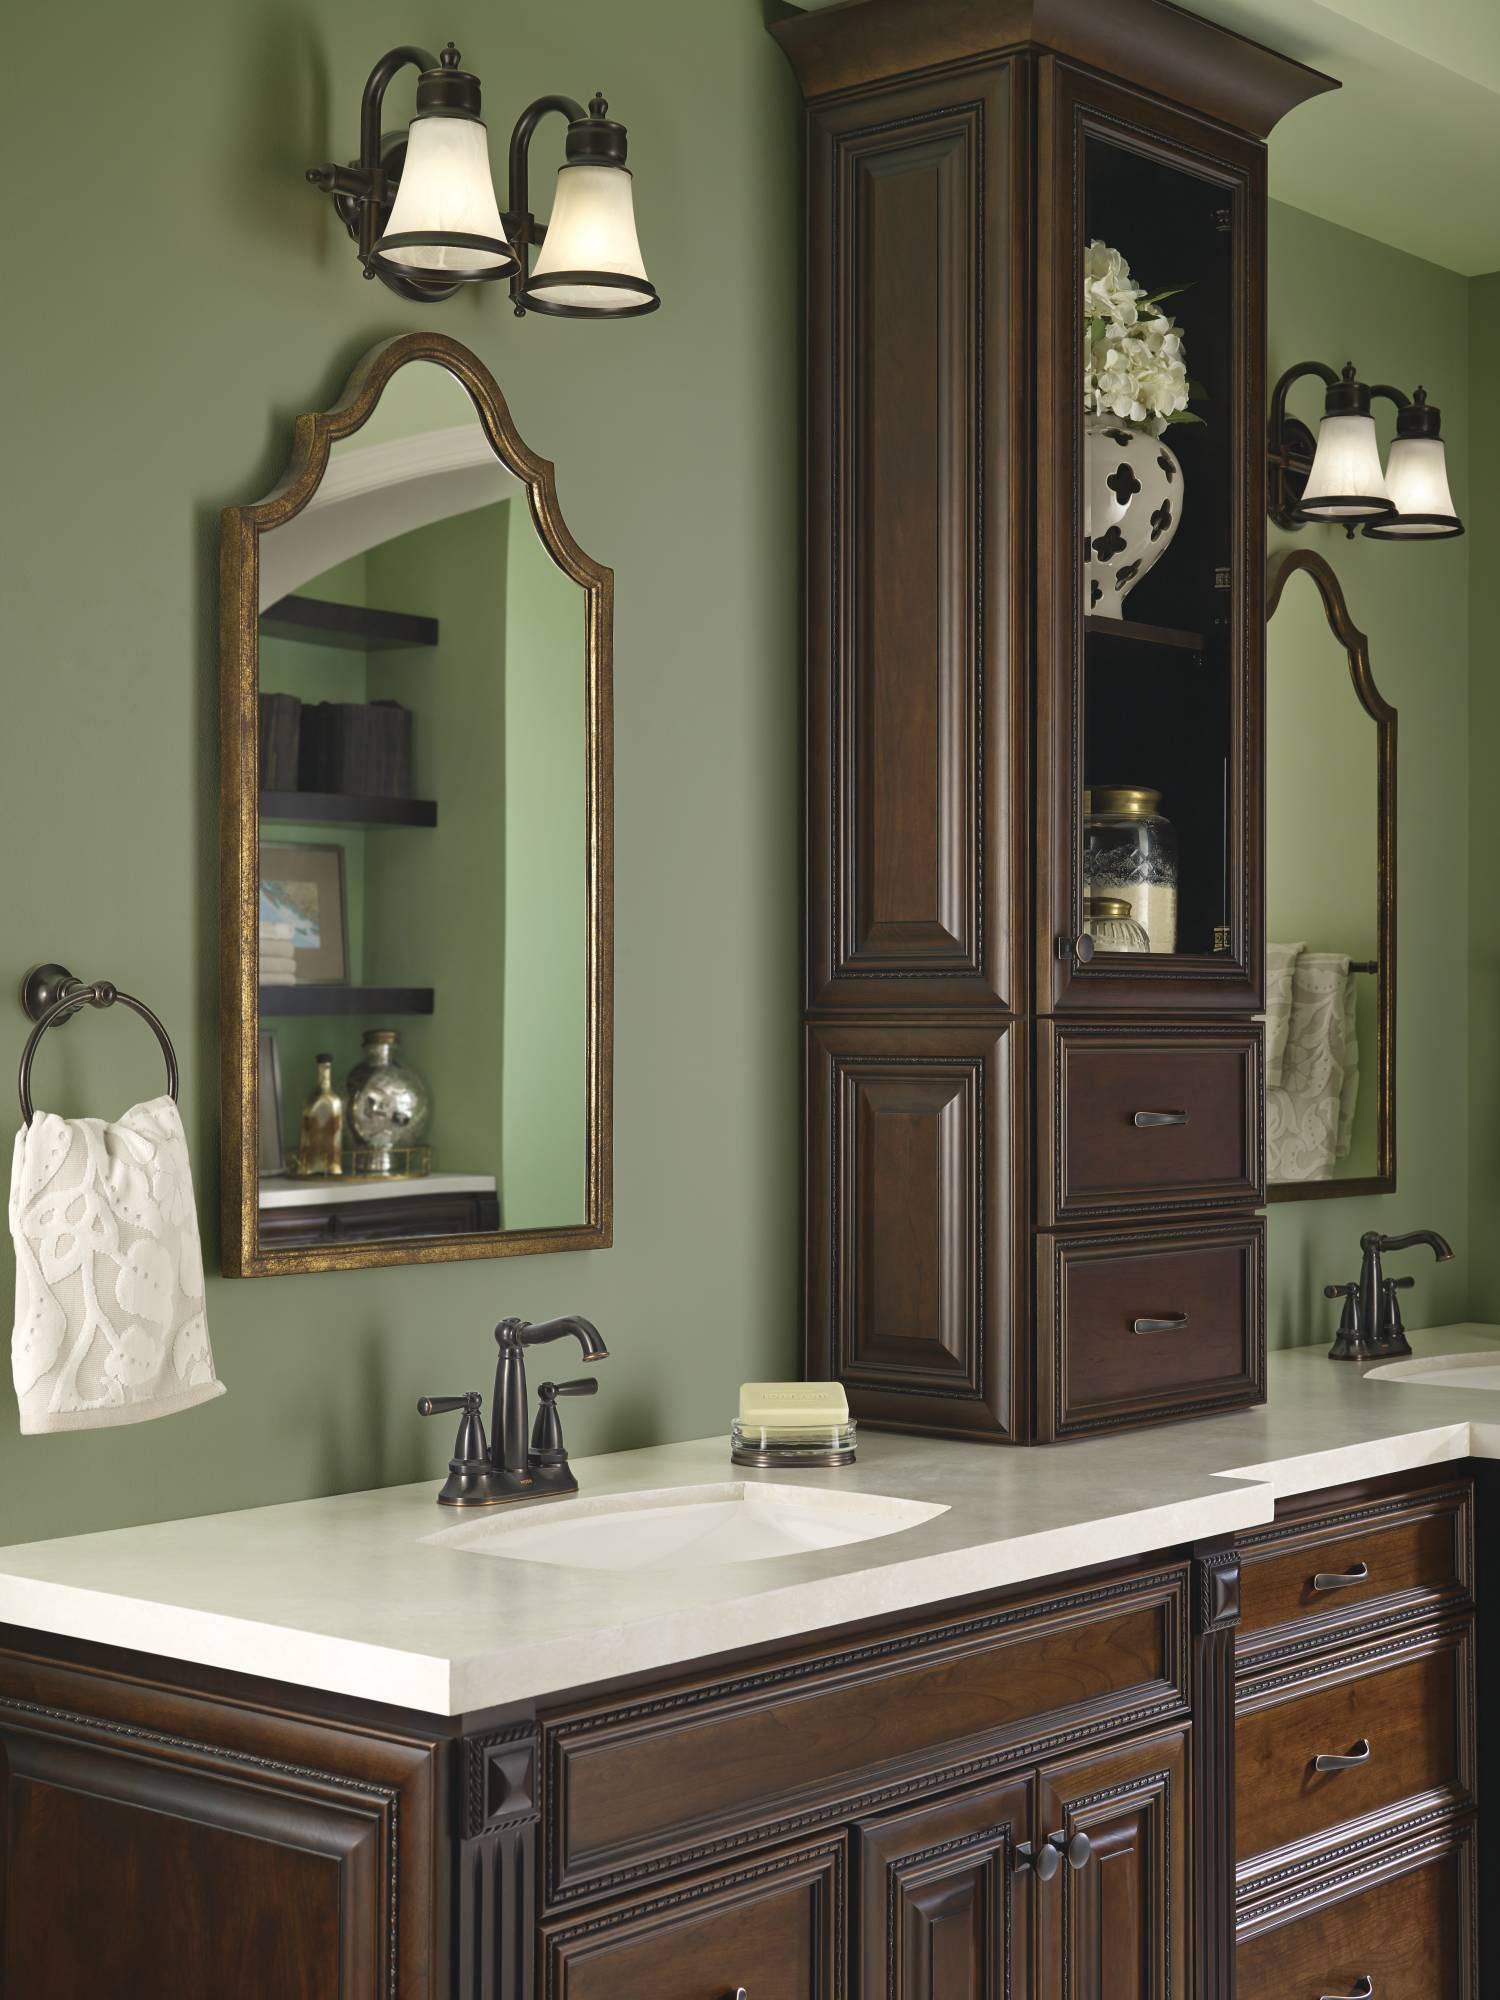 New Moen® Vale™ Collection Adds A Touch Of Luxury To The Bathroom